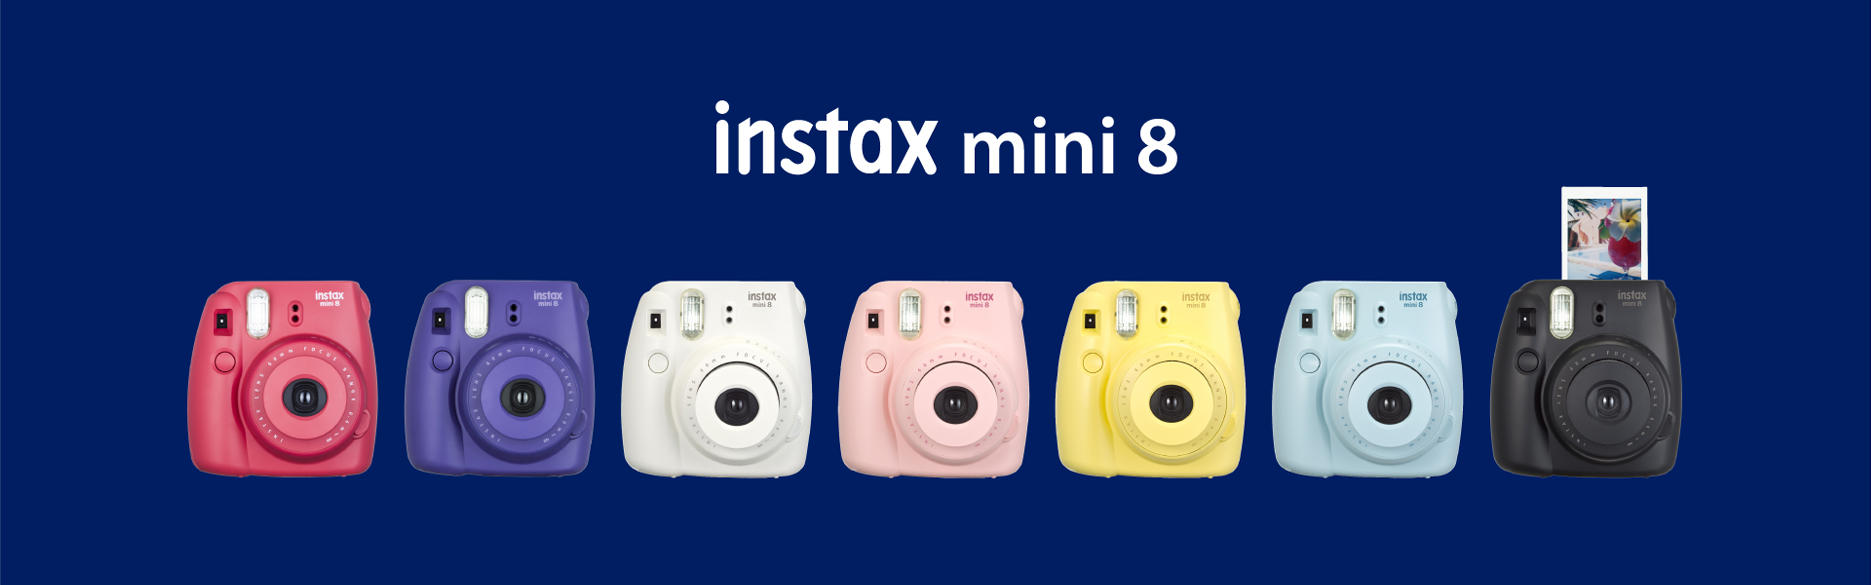 [photo] Instax Mini 8 cameras in rasberry, grape, white, pink, yellow, blue and black with a dark blue background